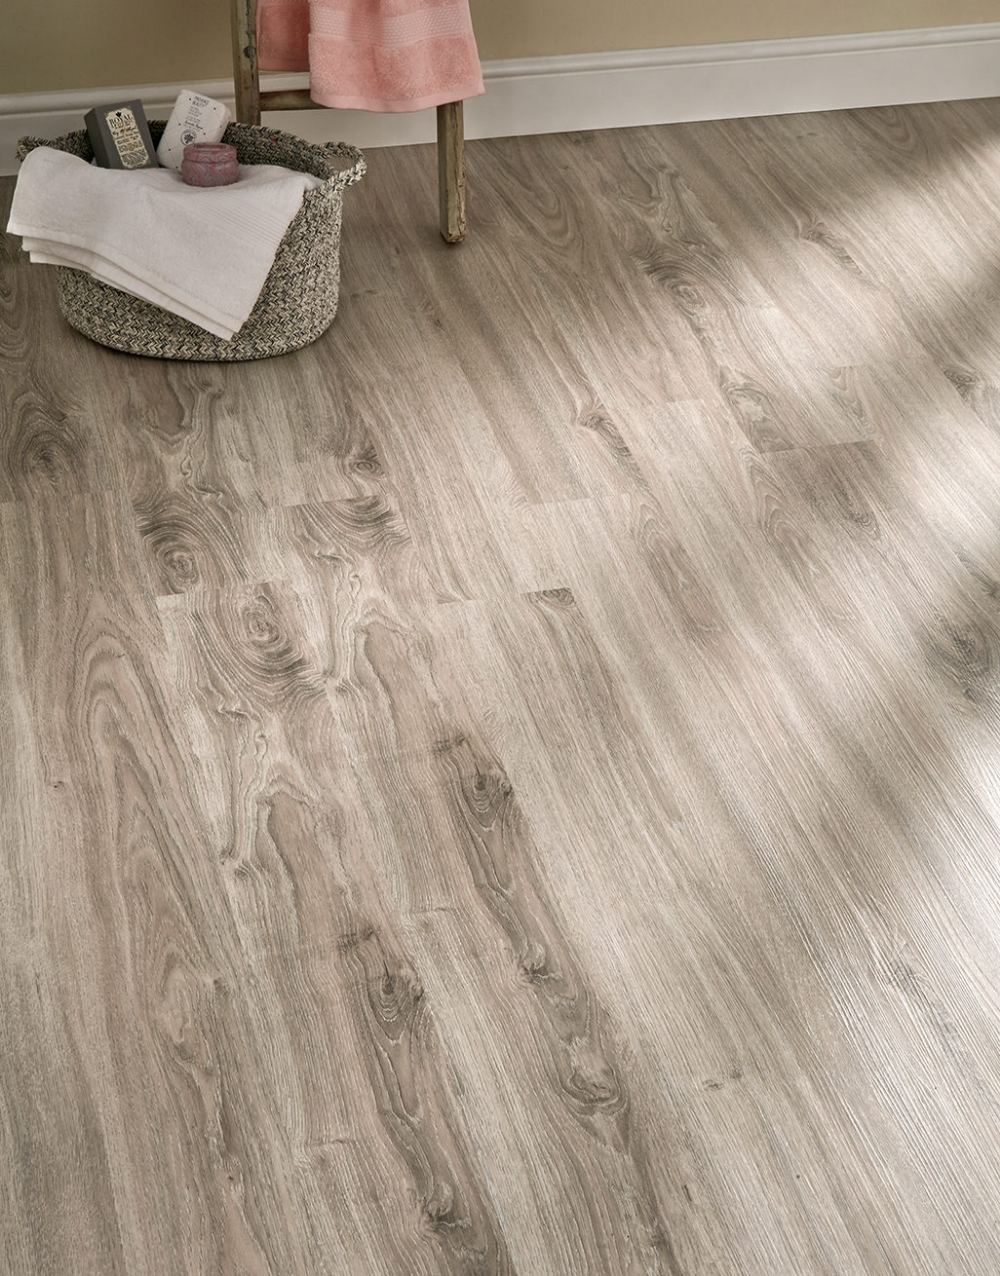 Taking Inspiration From The Beauty Of Natural Wood The Venice Tile Wood Collection Consists Of Varying Eye Catching Lvt Flooring Vinyl Wood Flooring Flooring